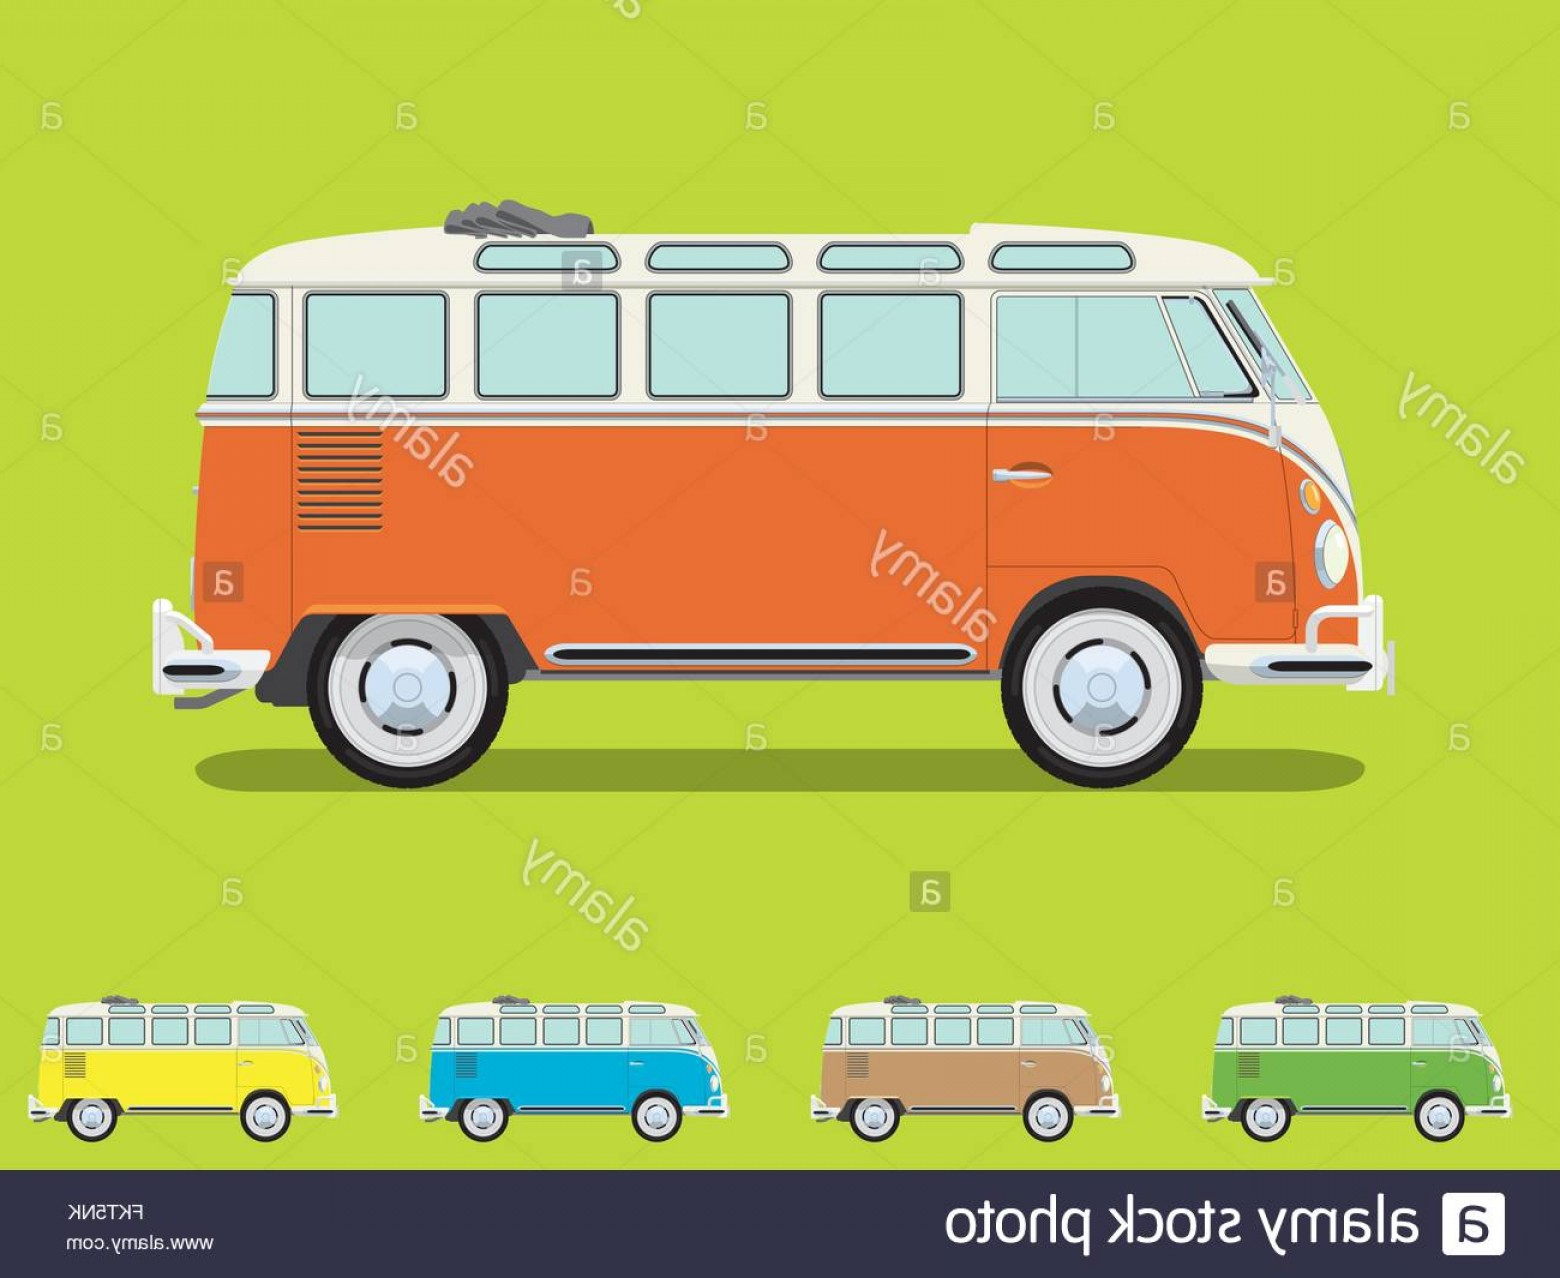 VW Vector Graphic: Stock Photo Vintage Volkswagen Camper Van With Open Roof Detailed Side View Four